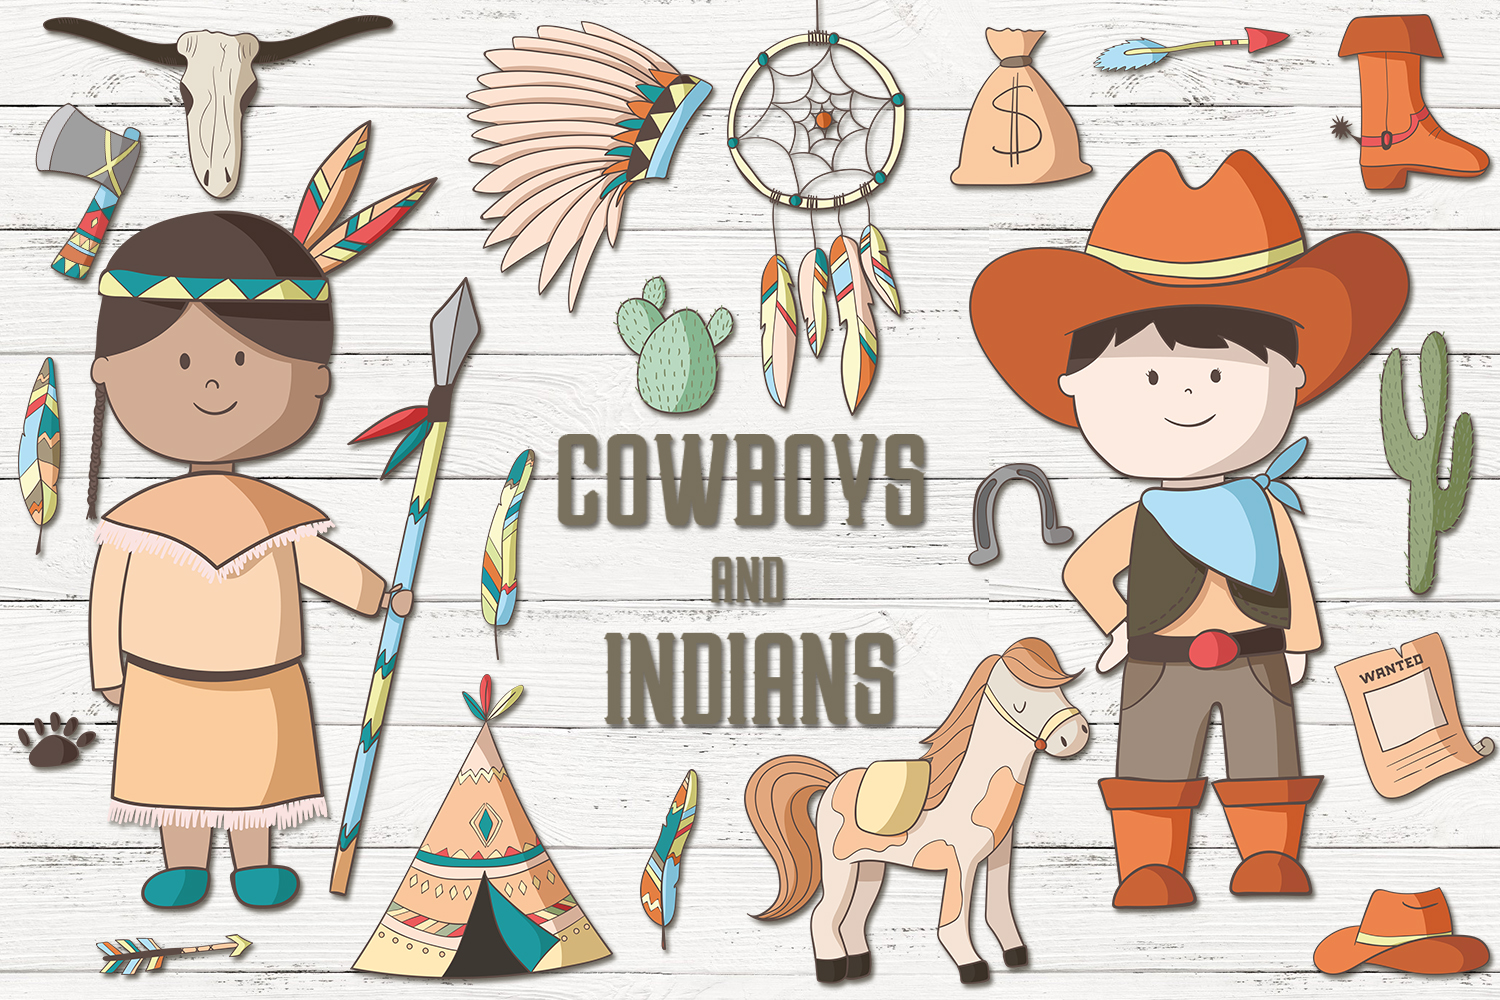 Cowboys and Indians example image 1